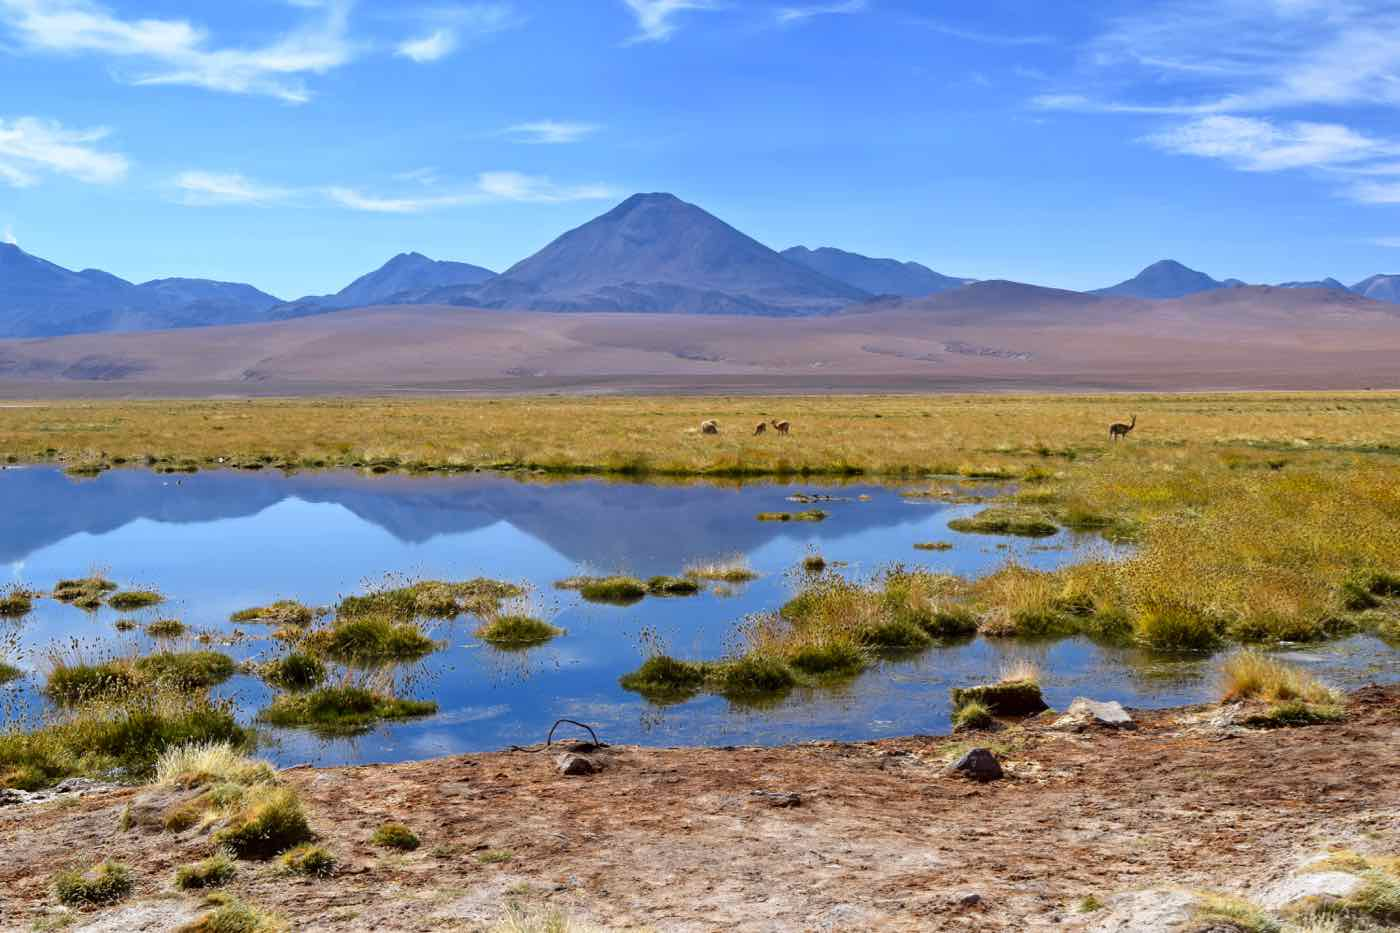 Lagoon on the way from El Tatio Geysers to San Pedro De Atacama